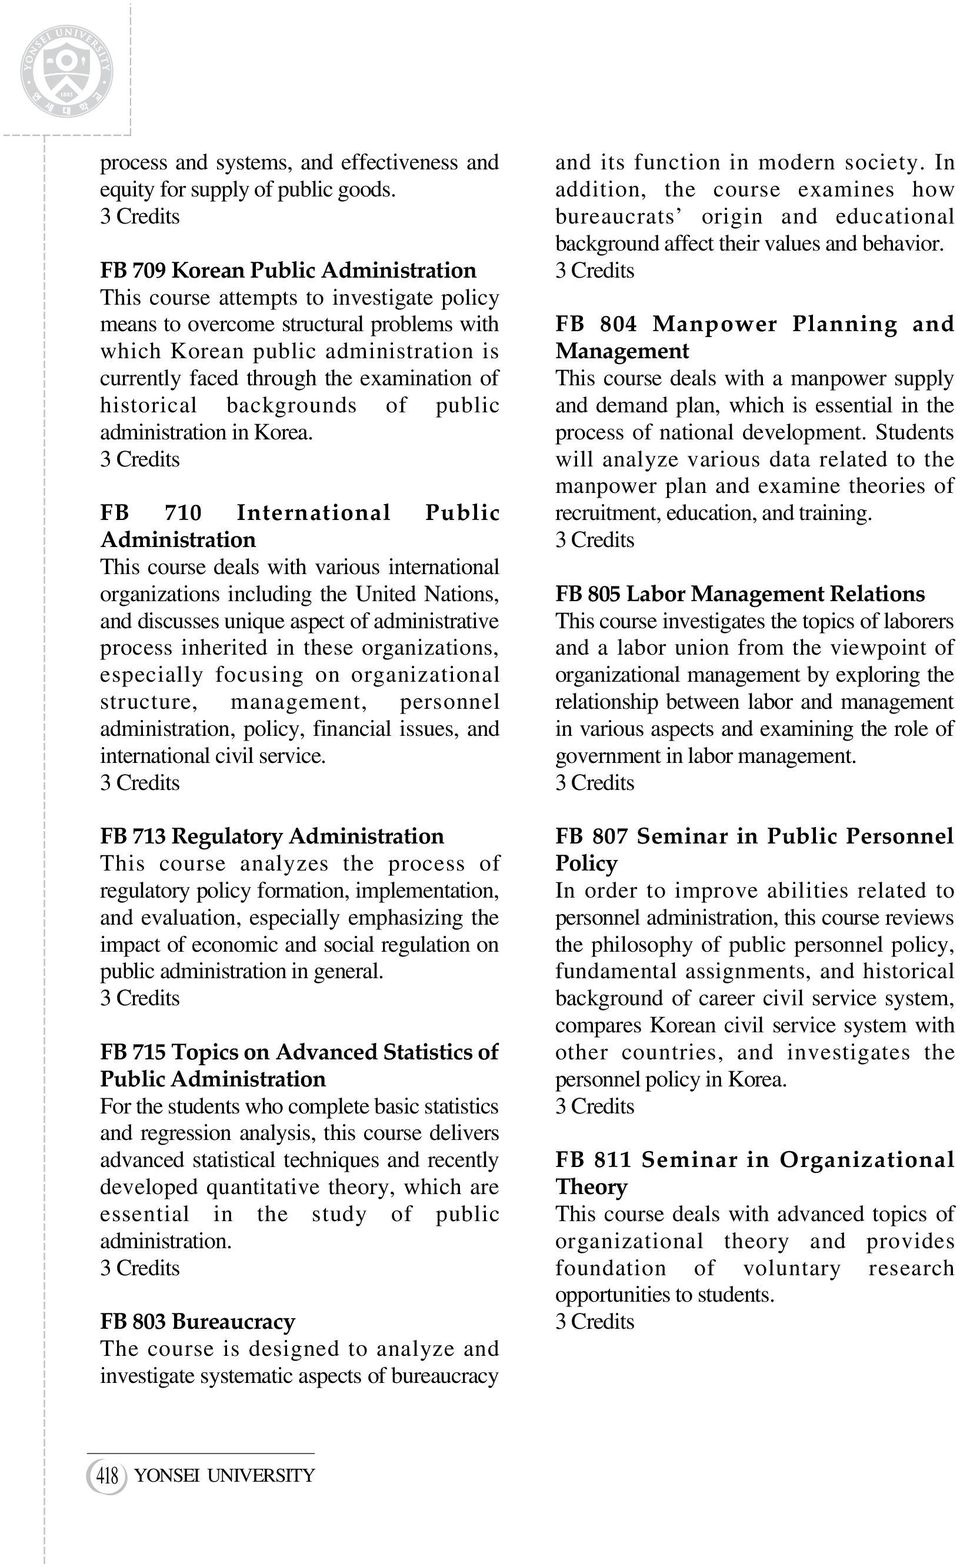 backgrounds of public administration in Korea.